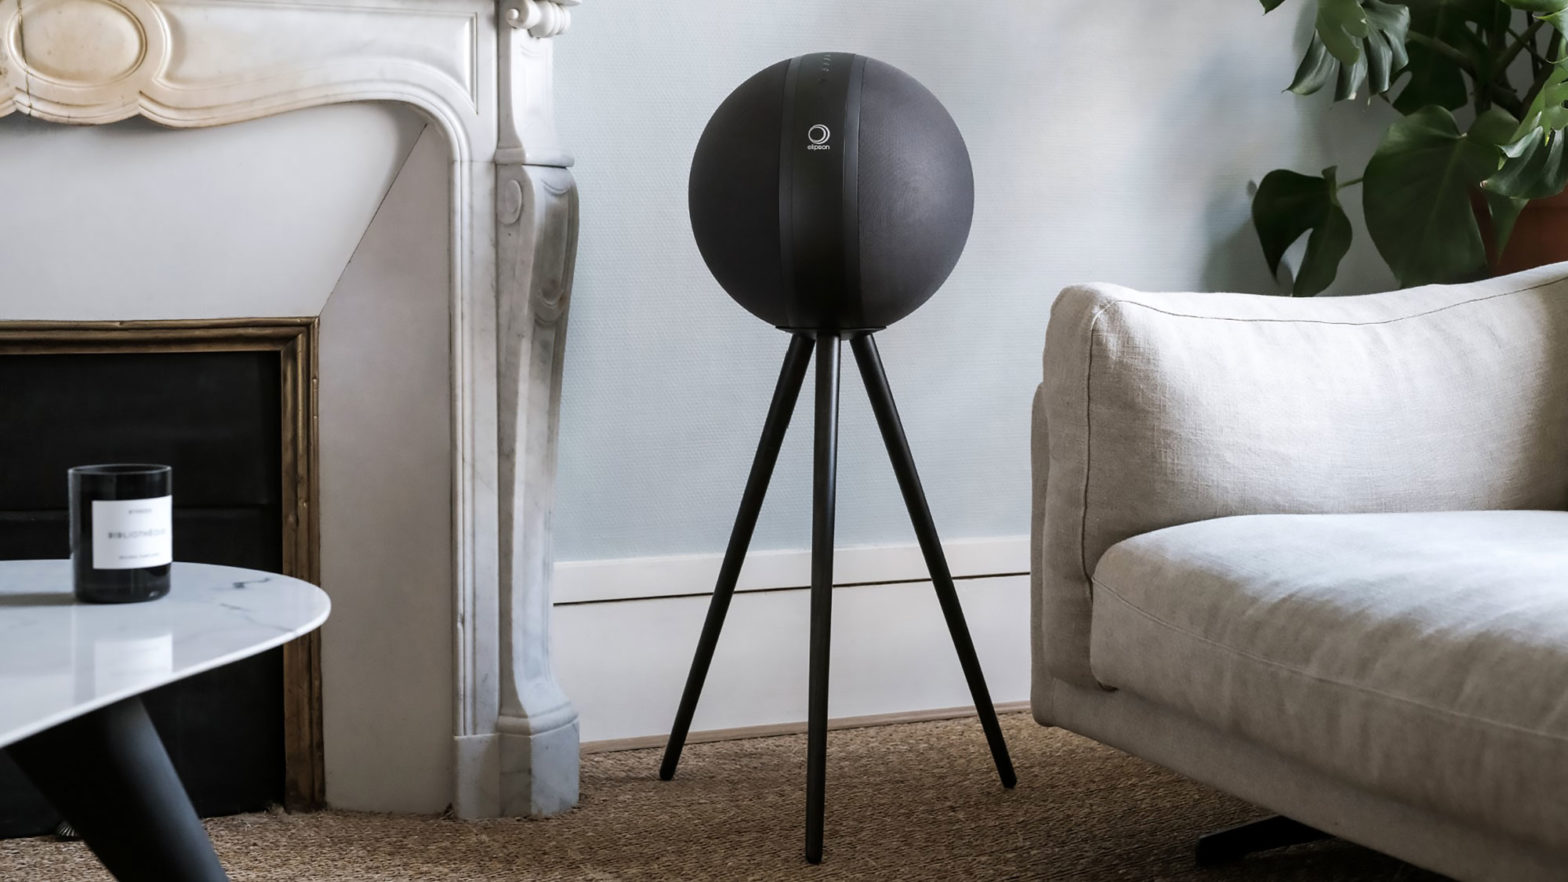 Elipson W35 Spherical Speaker System